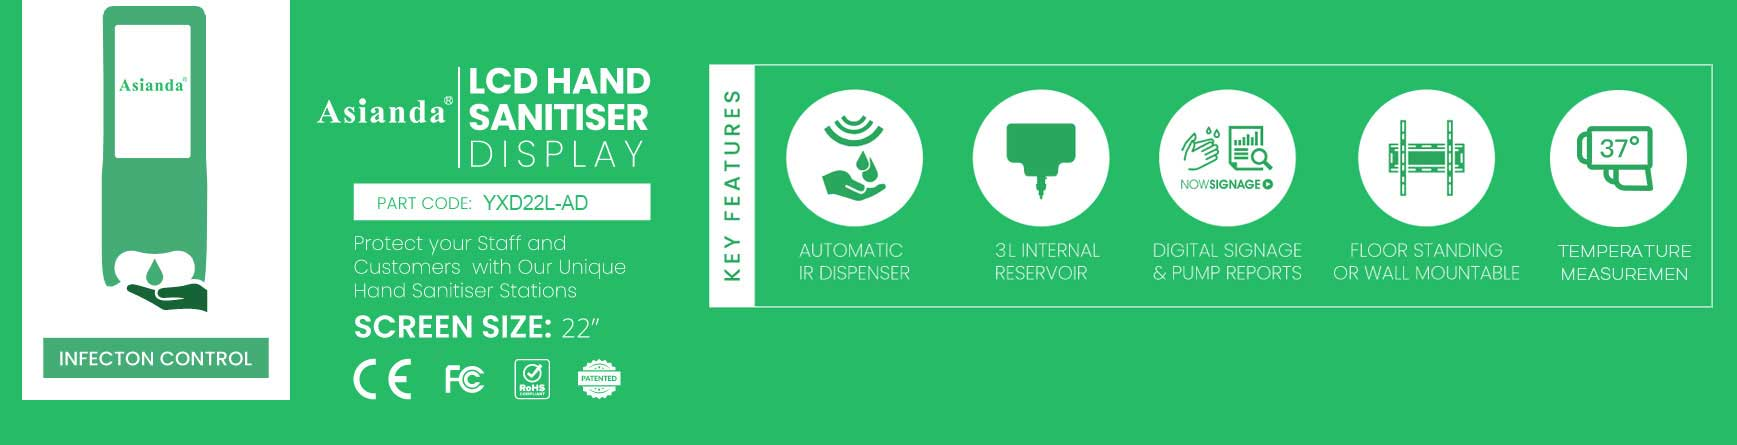 key features of Asianda hand sanitizer Display